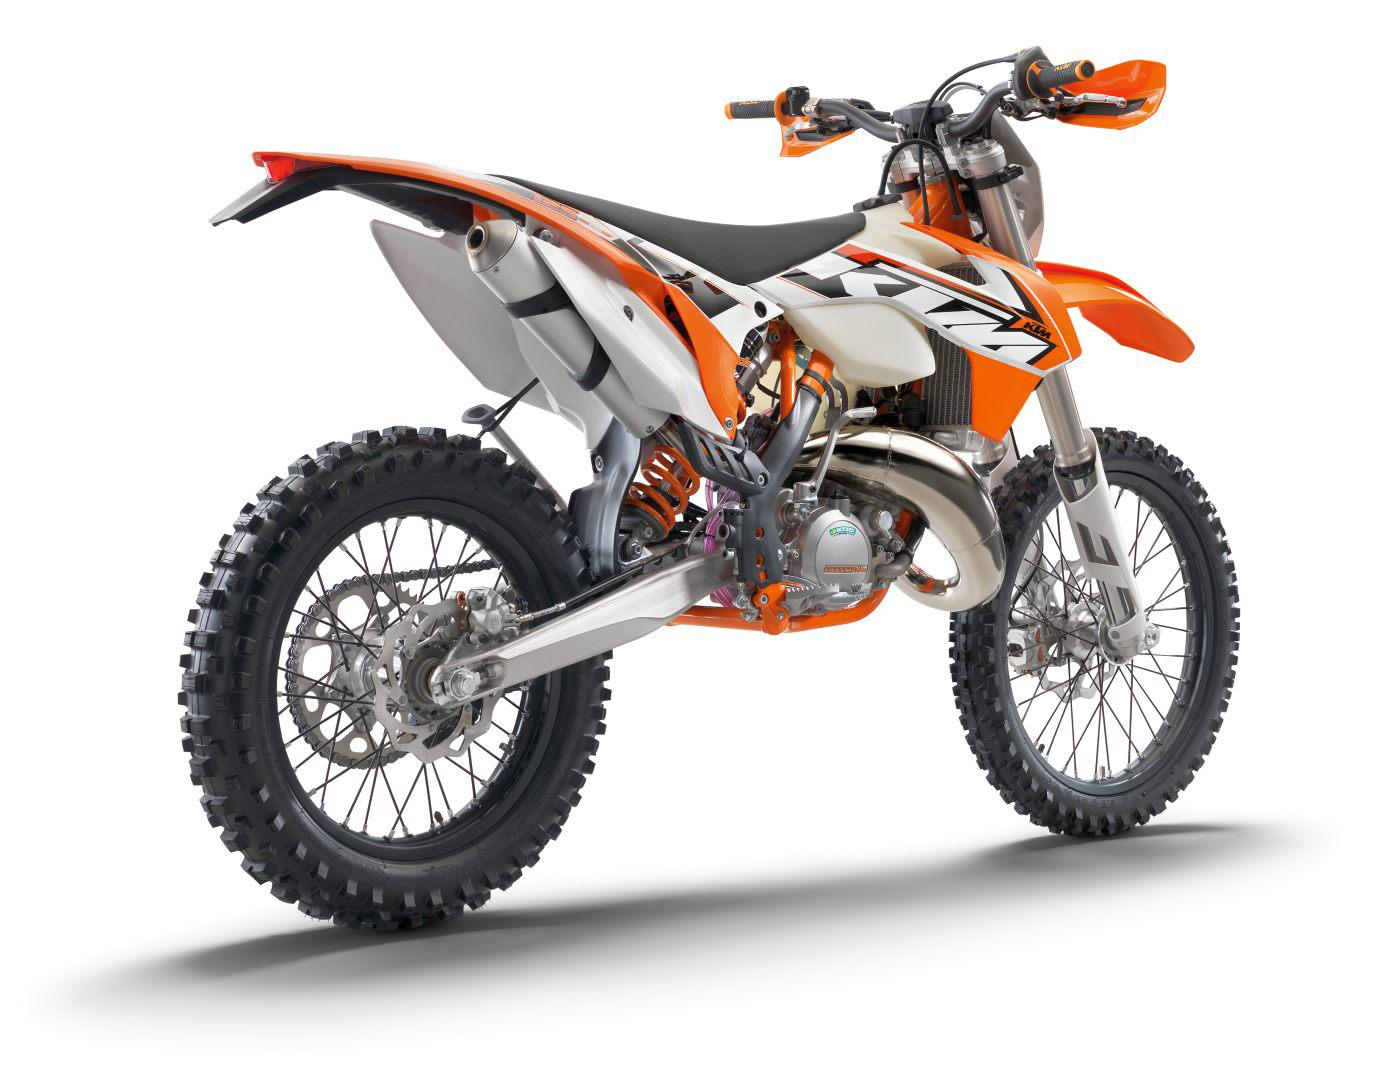 ktm ktm 125 enduro sport moto zombiedrive com. Black Bedroom Furniture Sets. Home Design Ideas